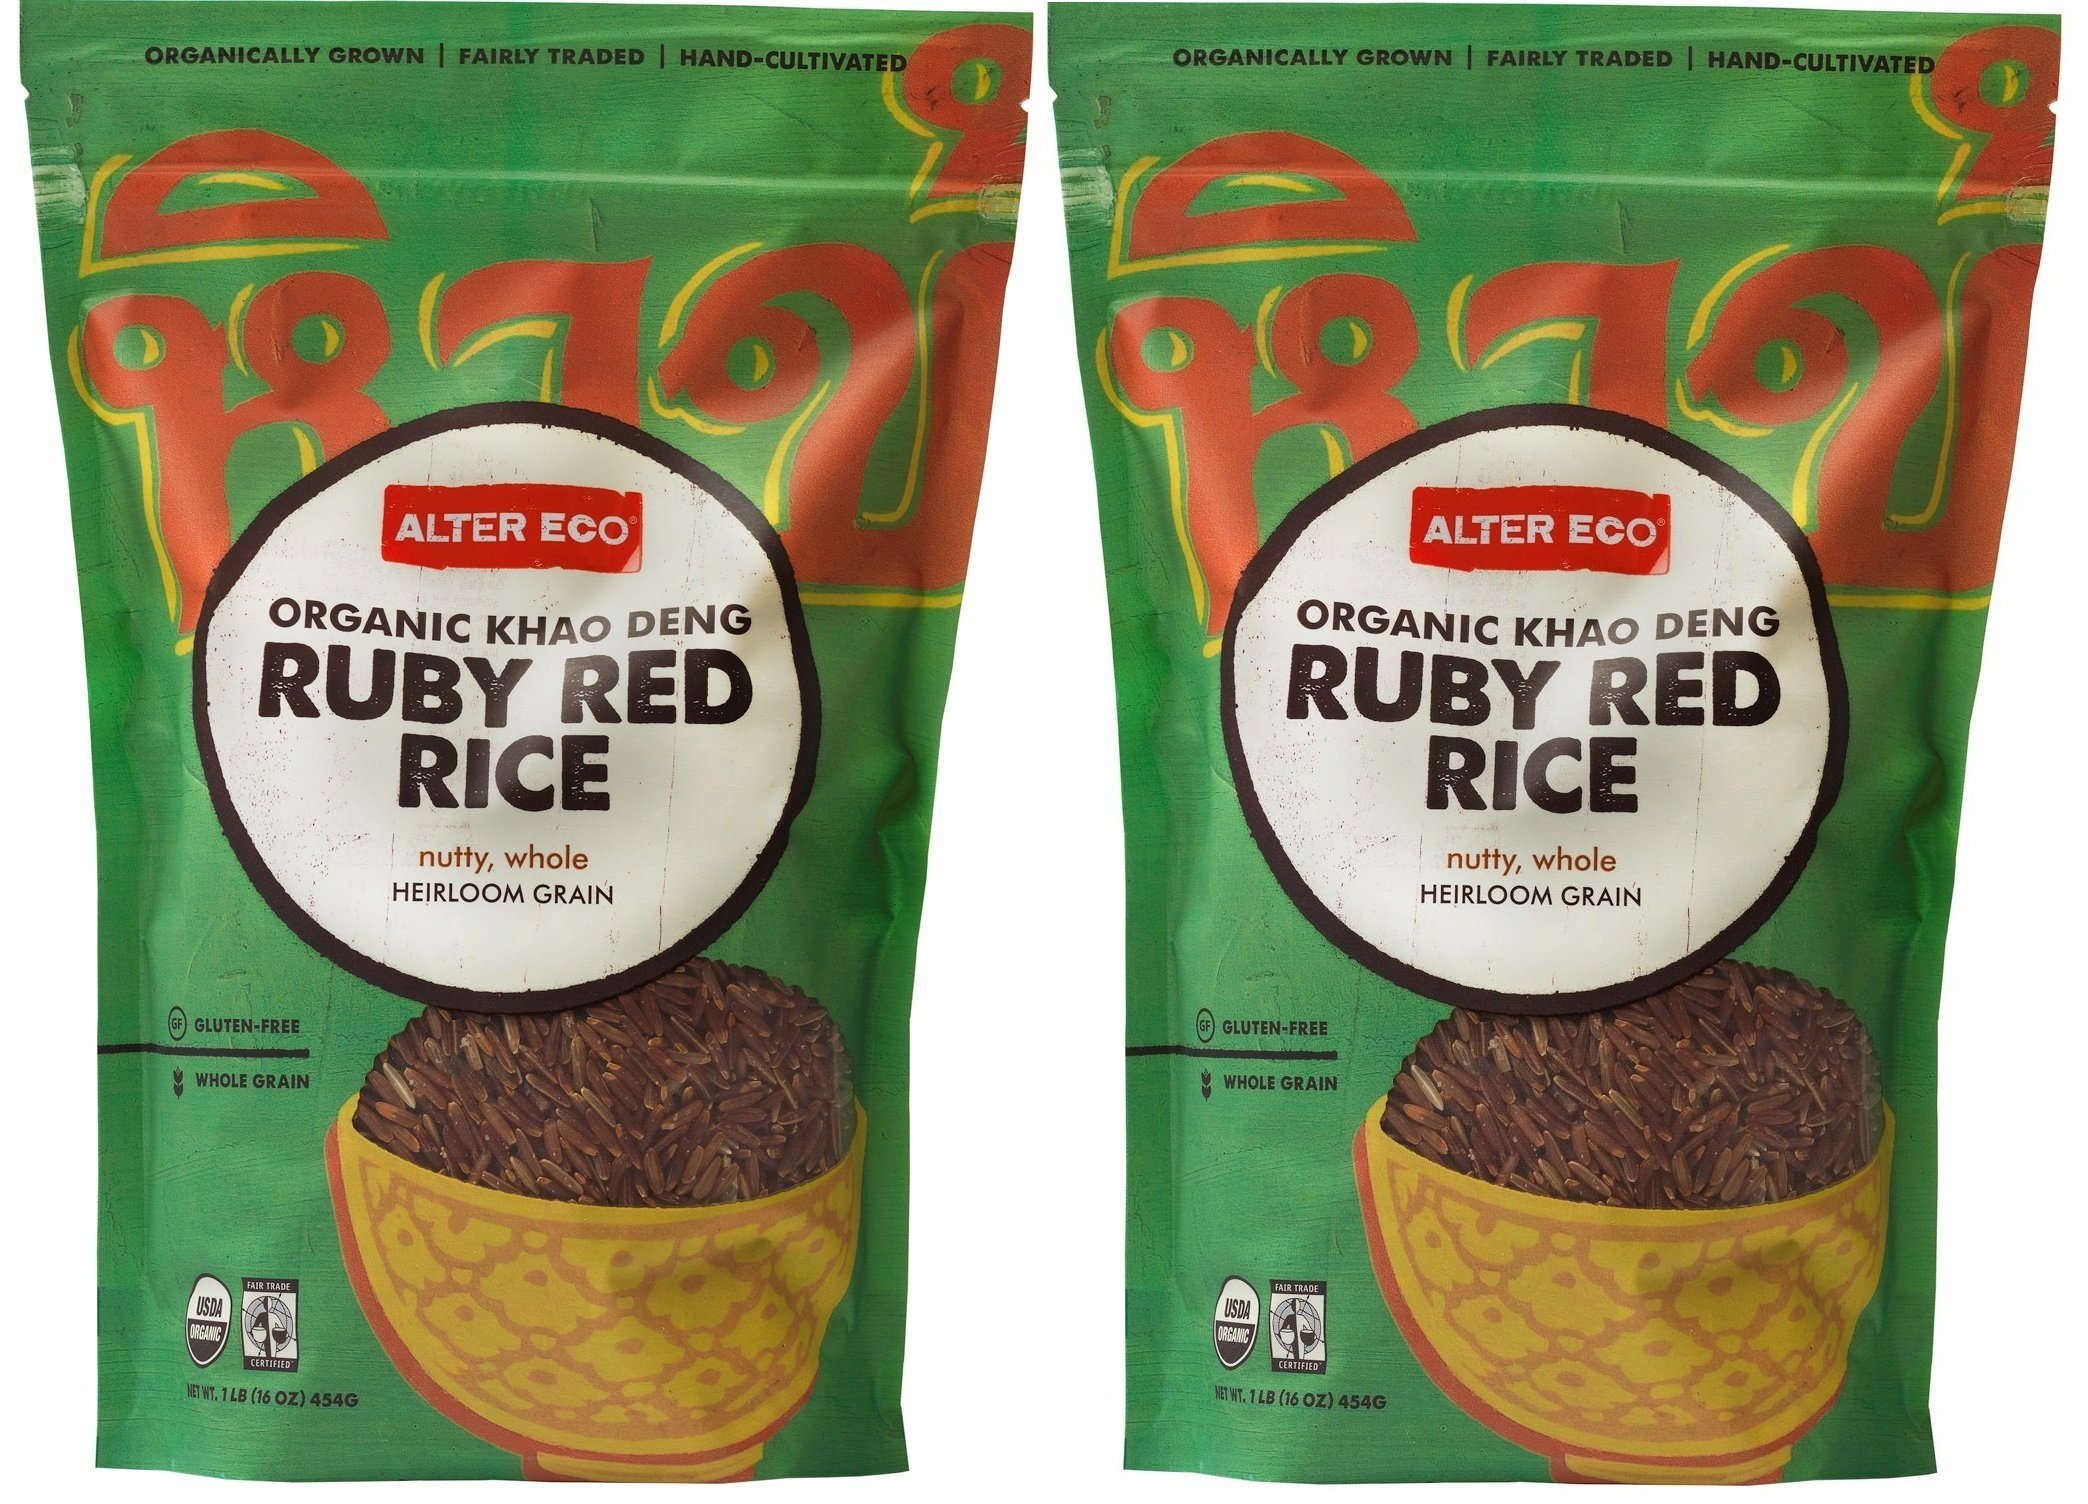 Alter Eco, Organic Khao Deng, Ruby Red Rice, 16 oz (454 g) Alter Eco, Organic Khao Deng, Ruby Red Rice, 16 oz (454 g) - 2pcs by Alter Eco